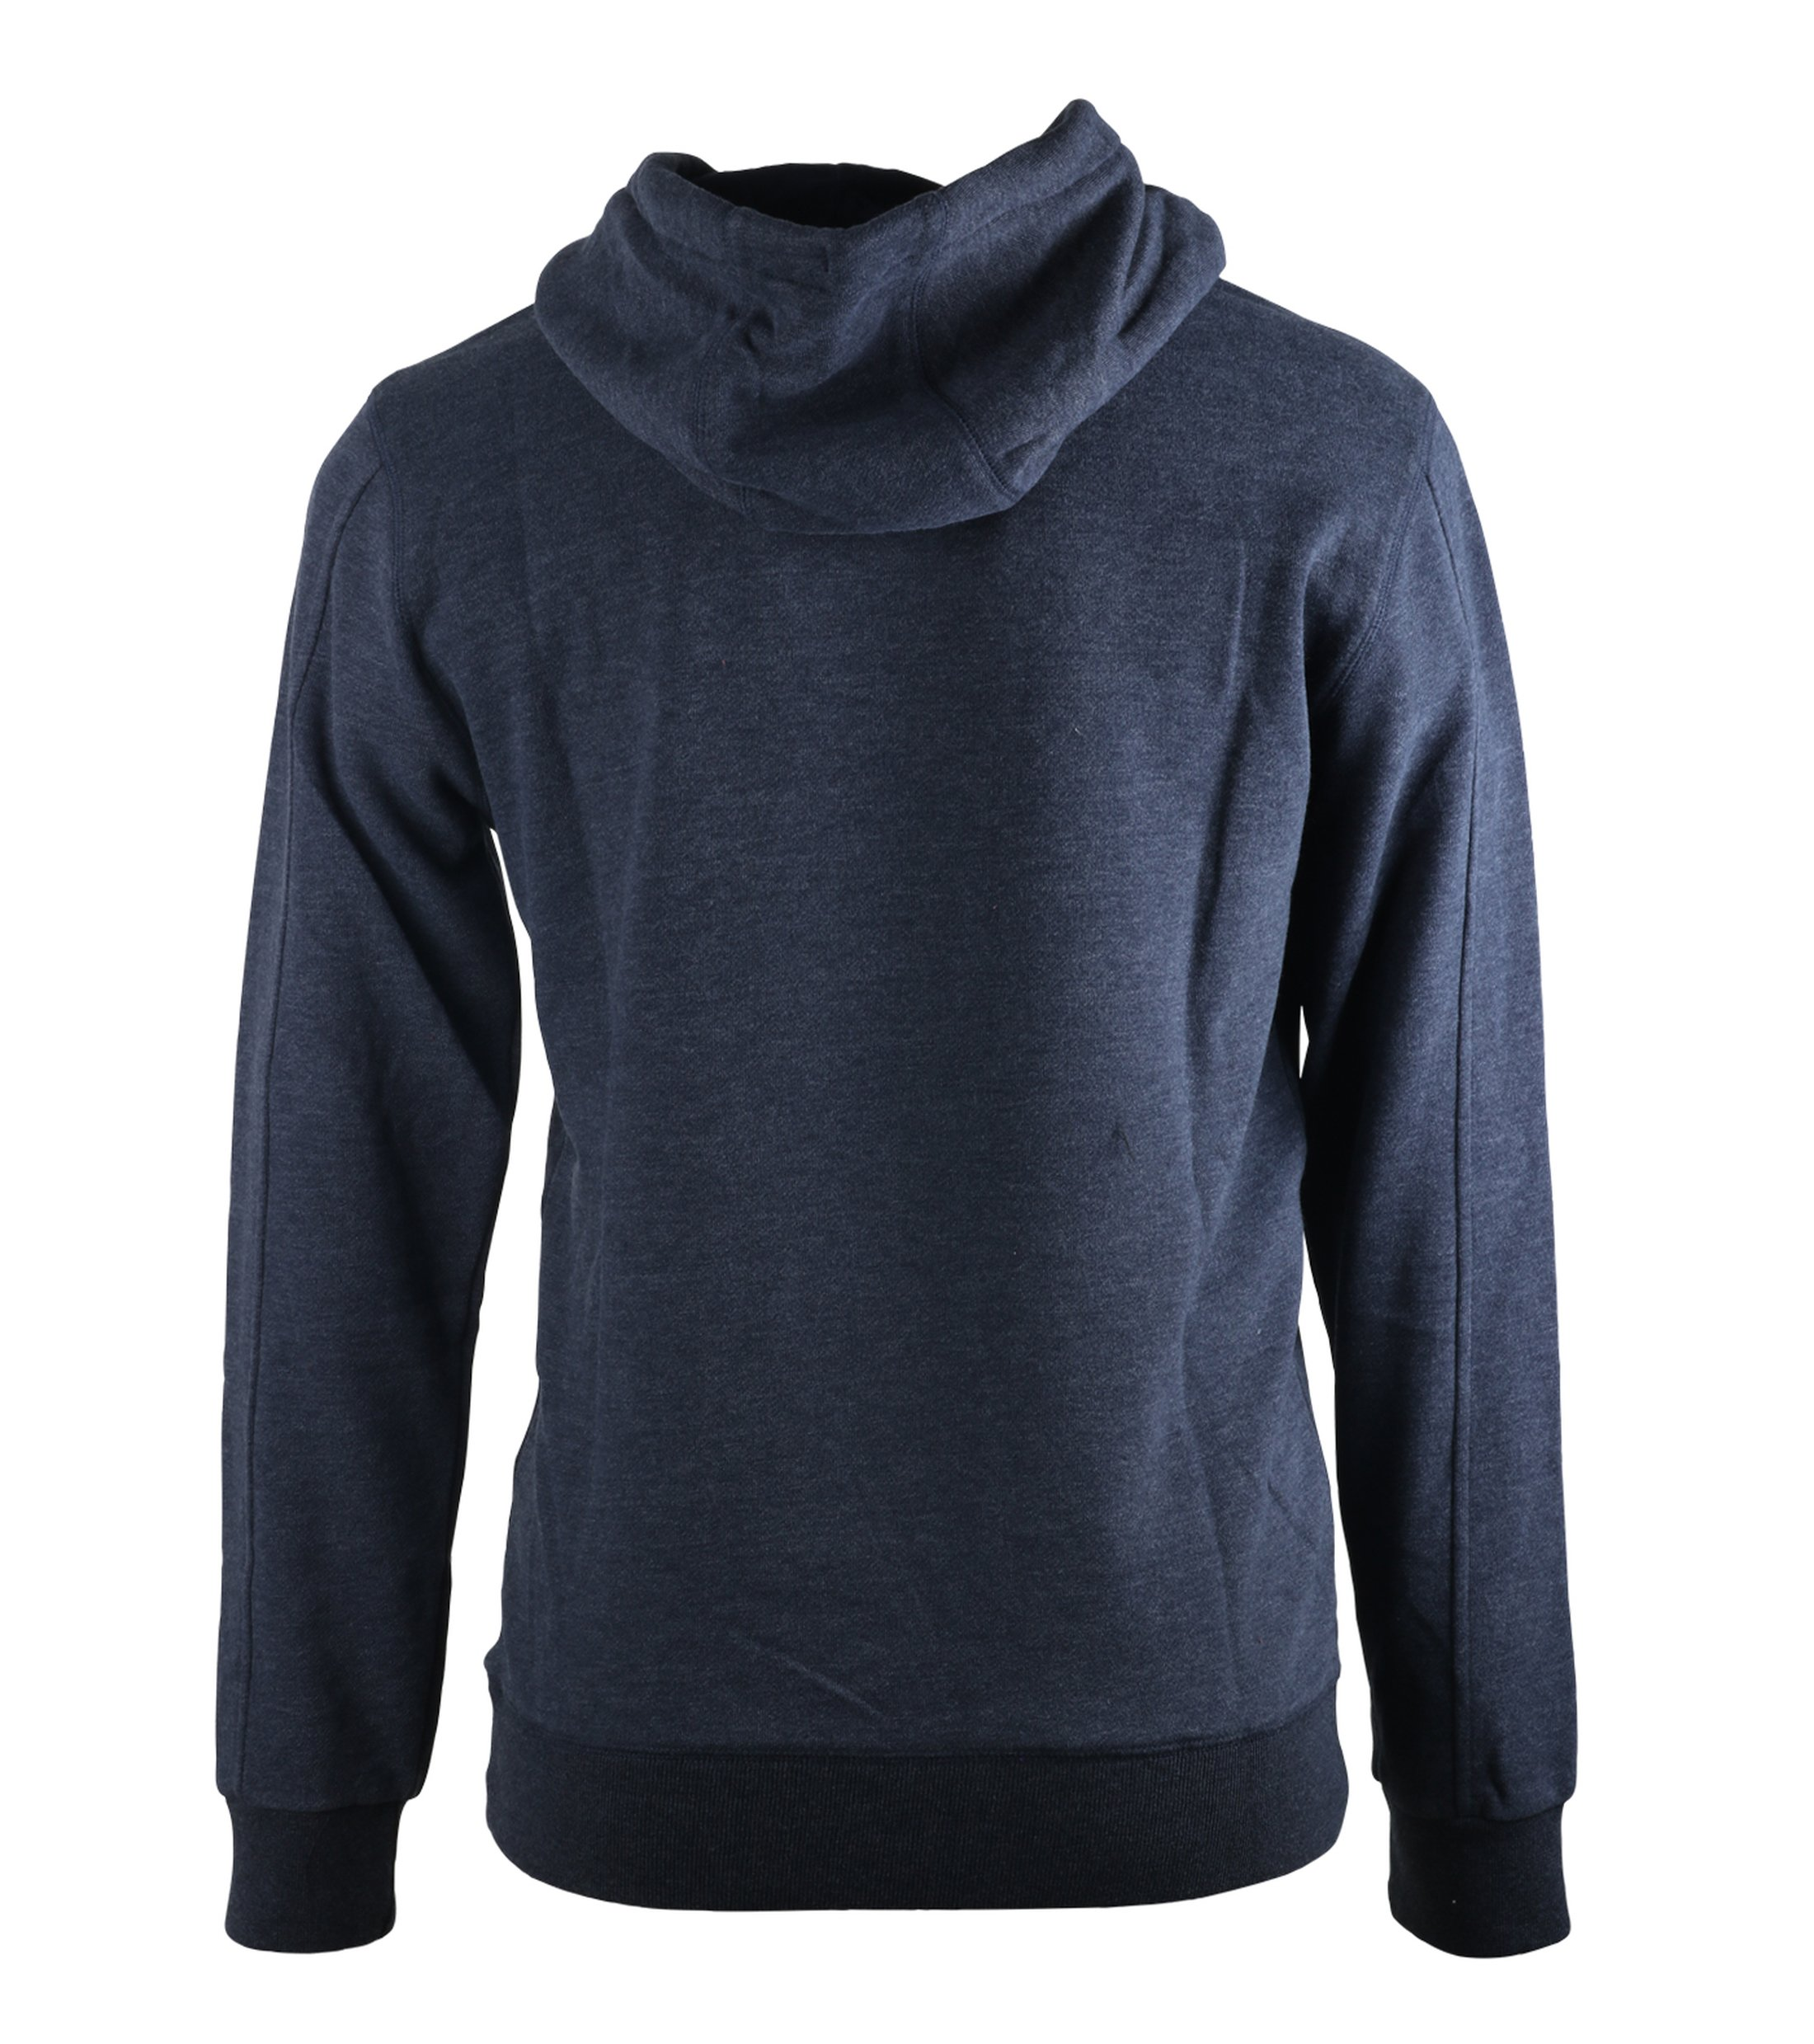 NZA Hooded Sweater Navy 16GN302